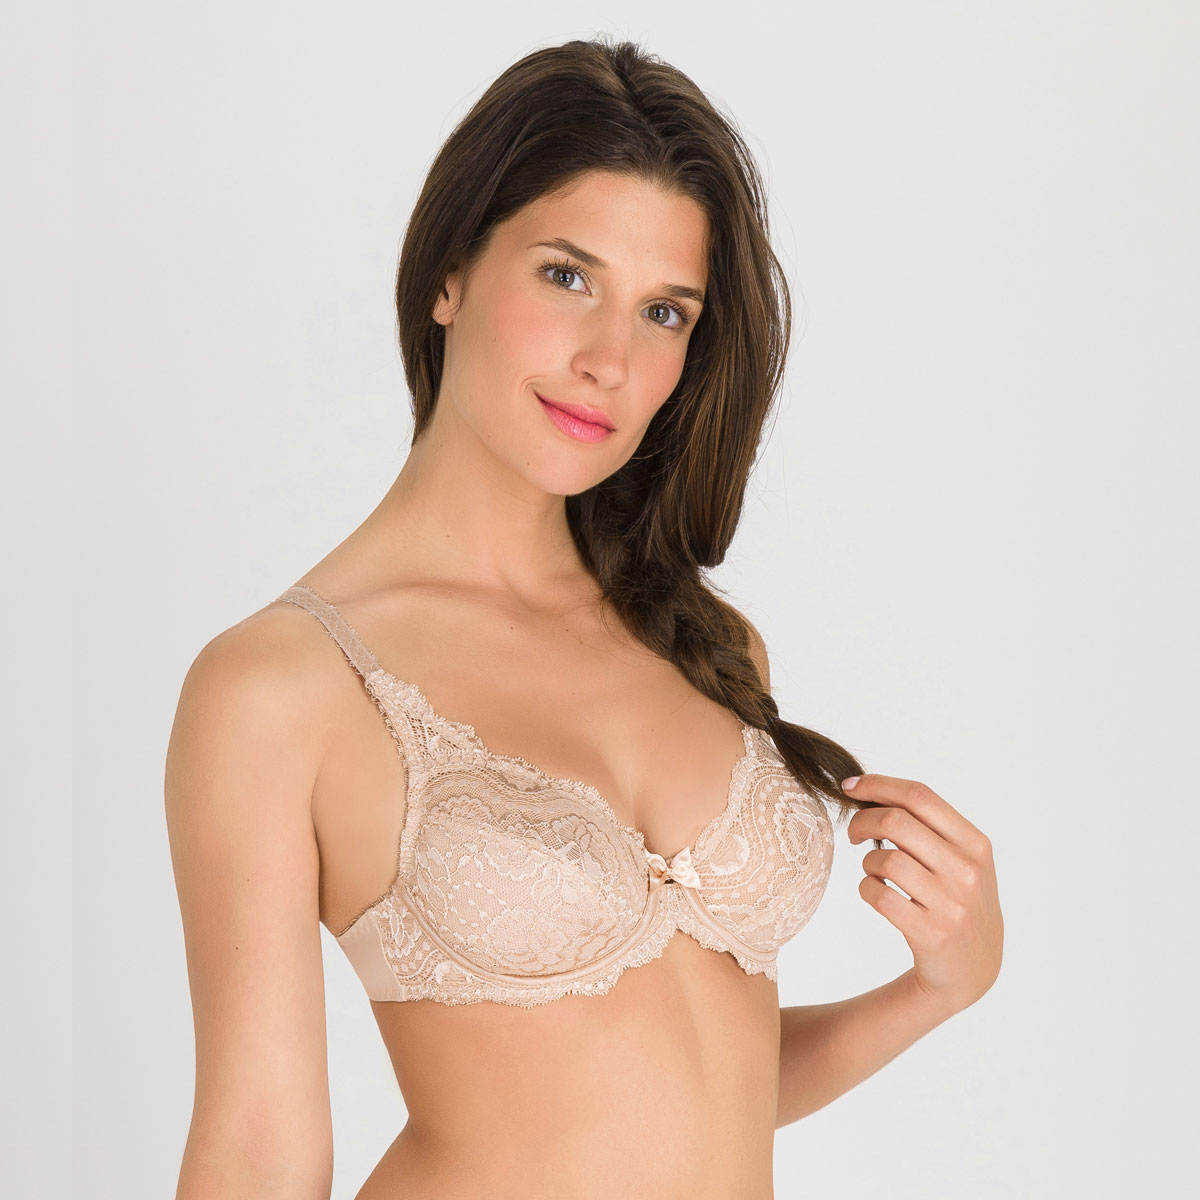 Full Cup Bra in Skin Tone – Flower Elegance-PLAYTEX